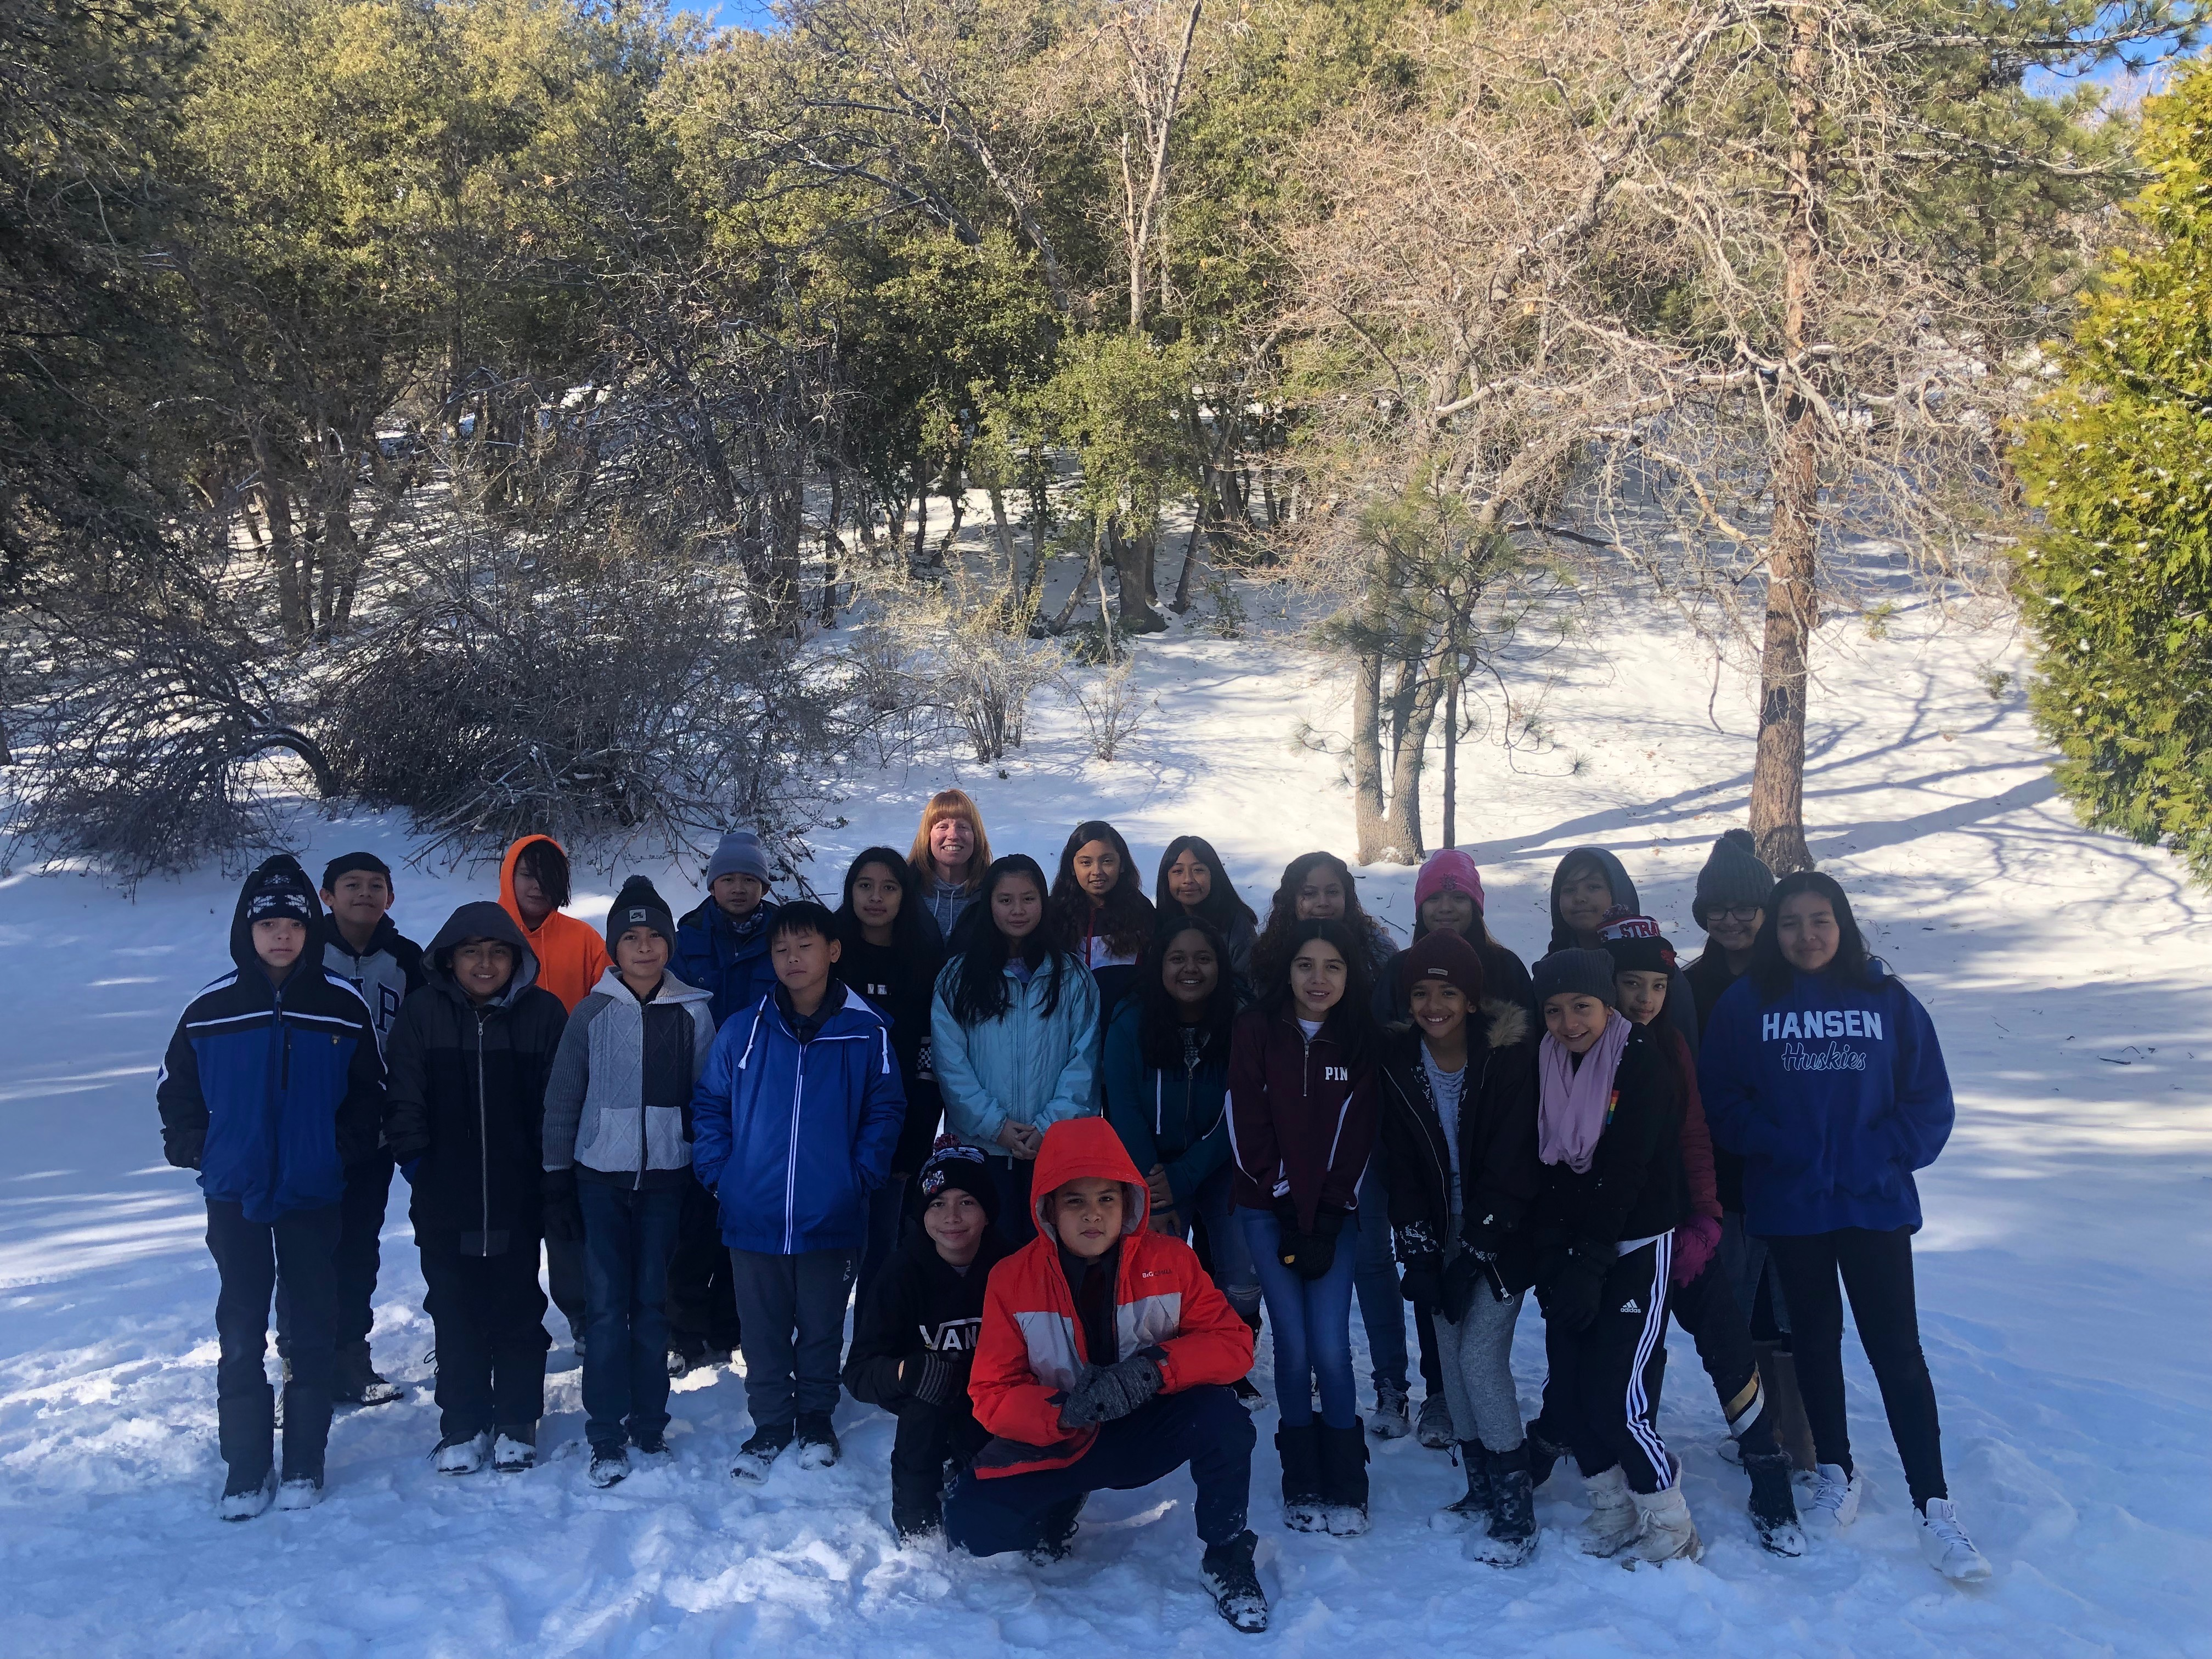 Paint Hansen School Sixth Graders Attend Outdoor Science School Students